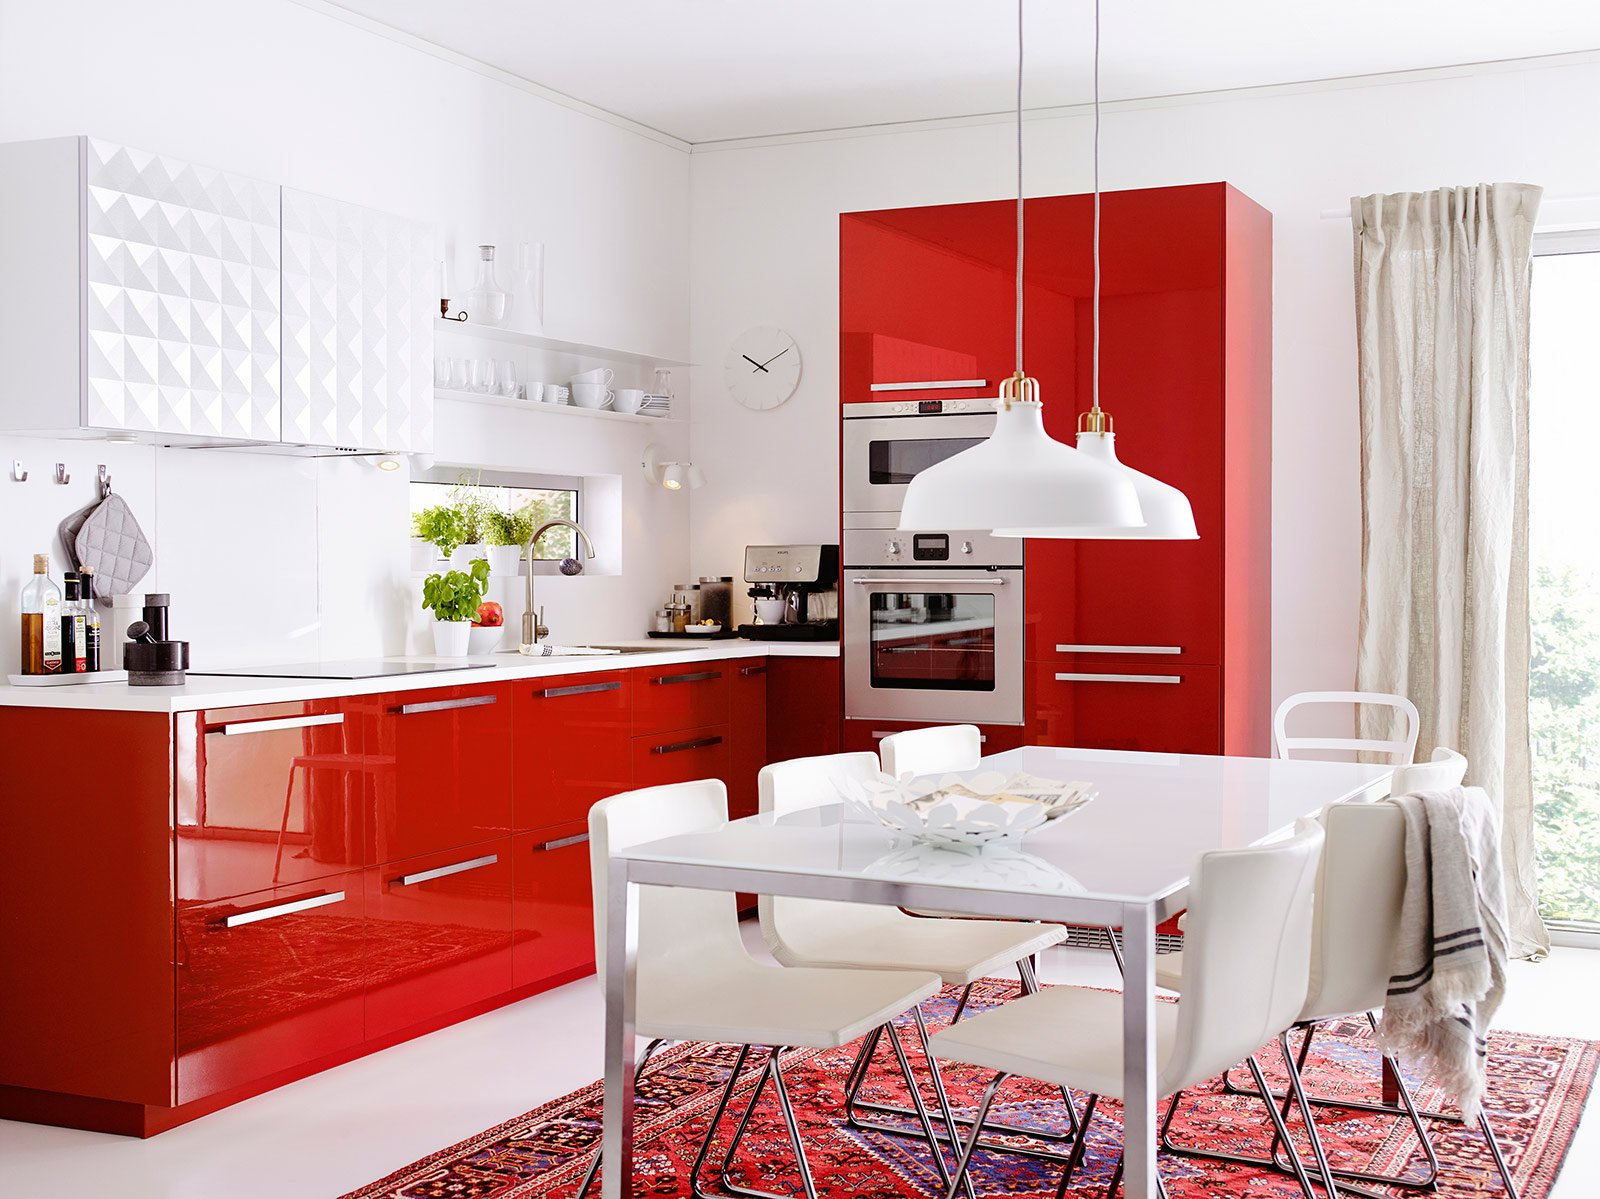 Cucine colorate come un quadro contemporaneo cose di casa for Precio cocina completa ikea